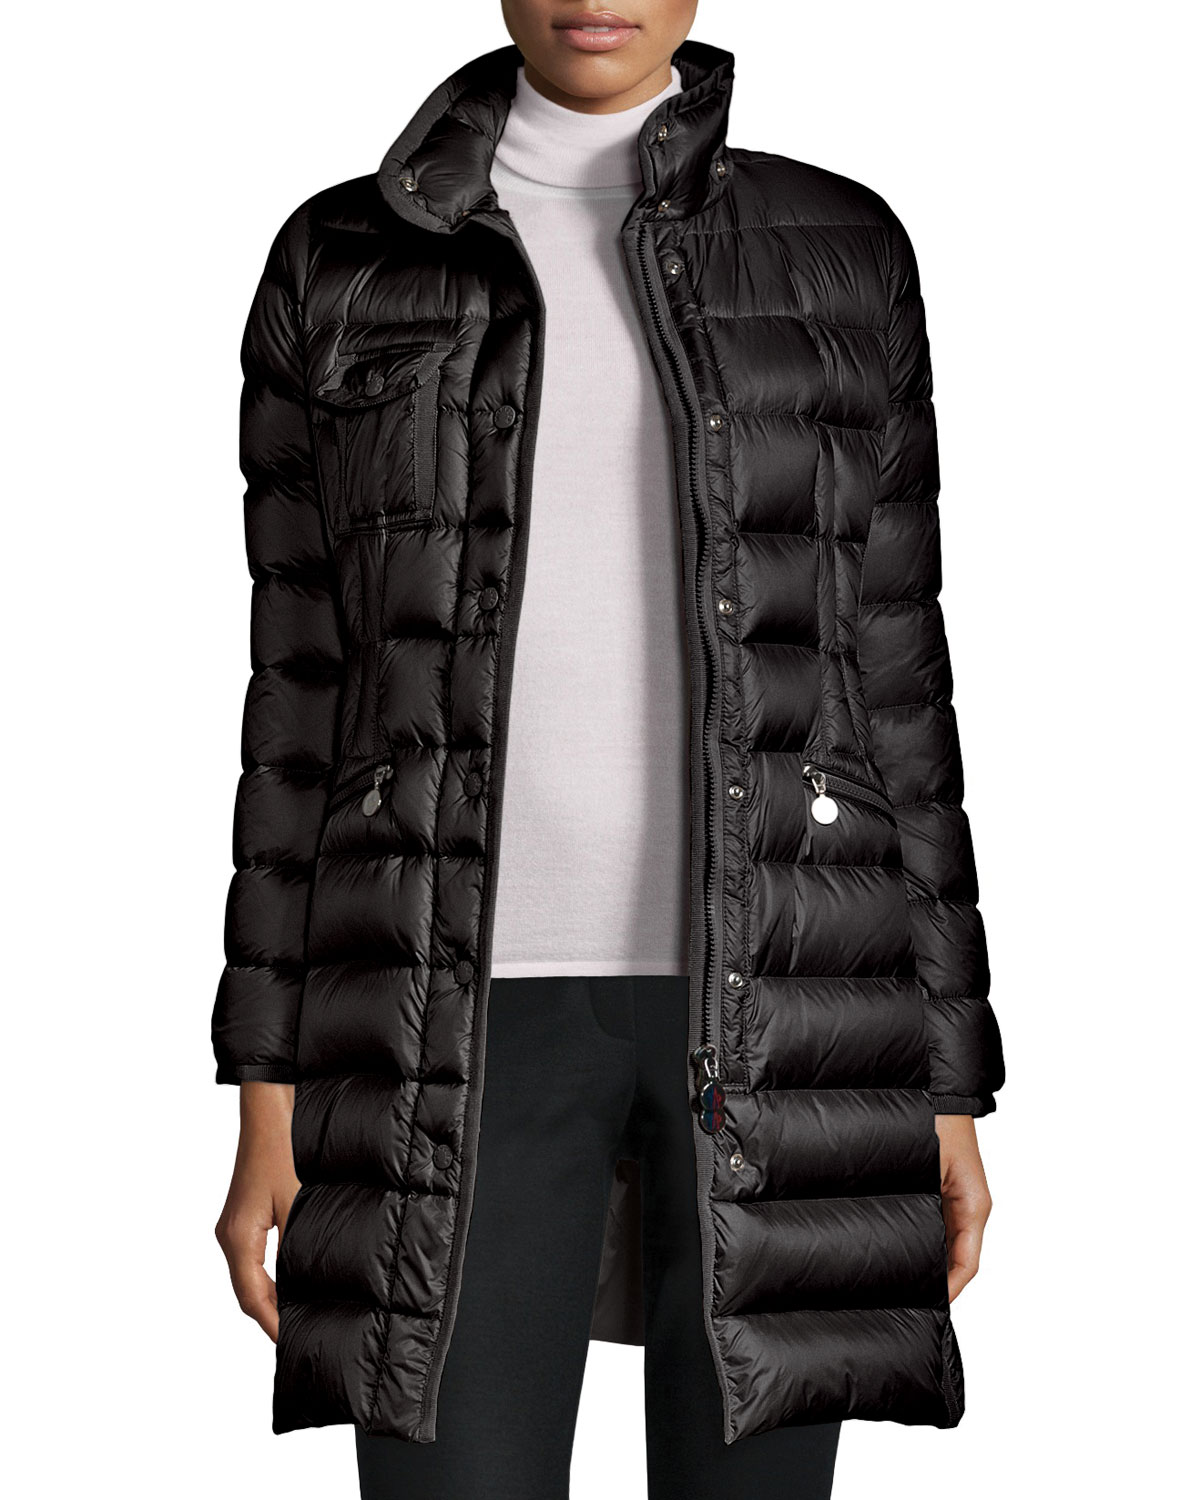 Hermine Hooded Long Puffer Coat, Size: 0 (XX-Small), BLACK - Moncler